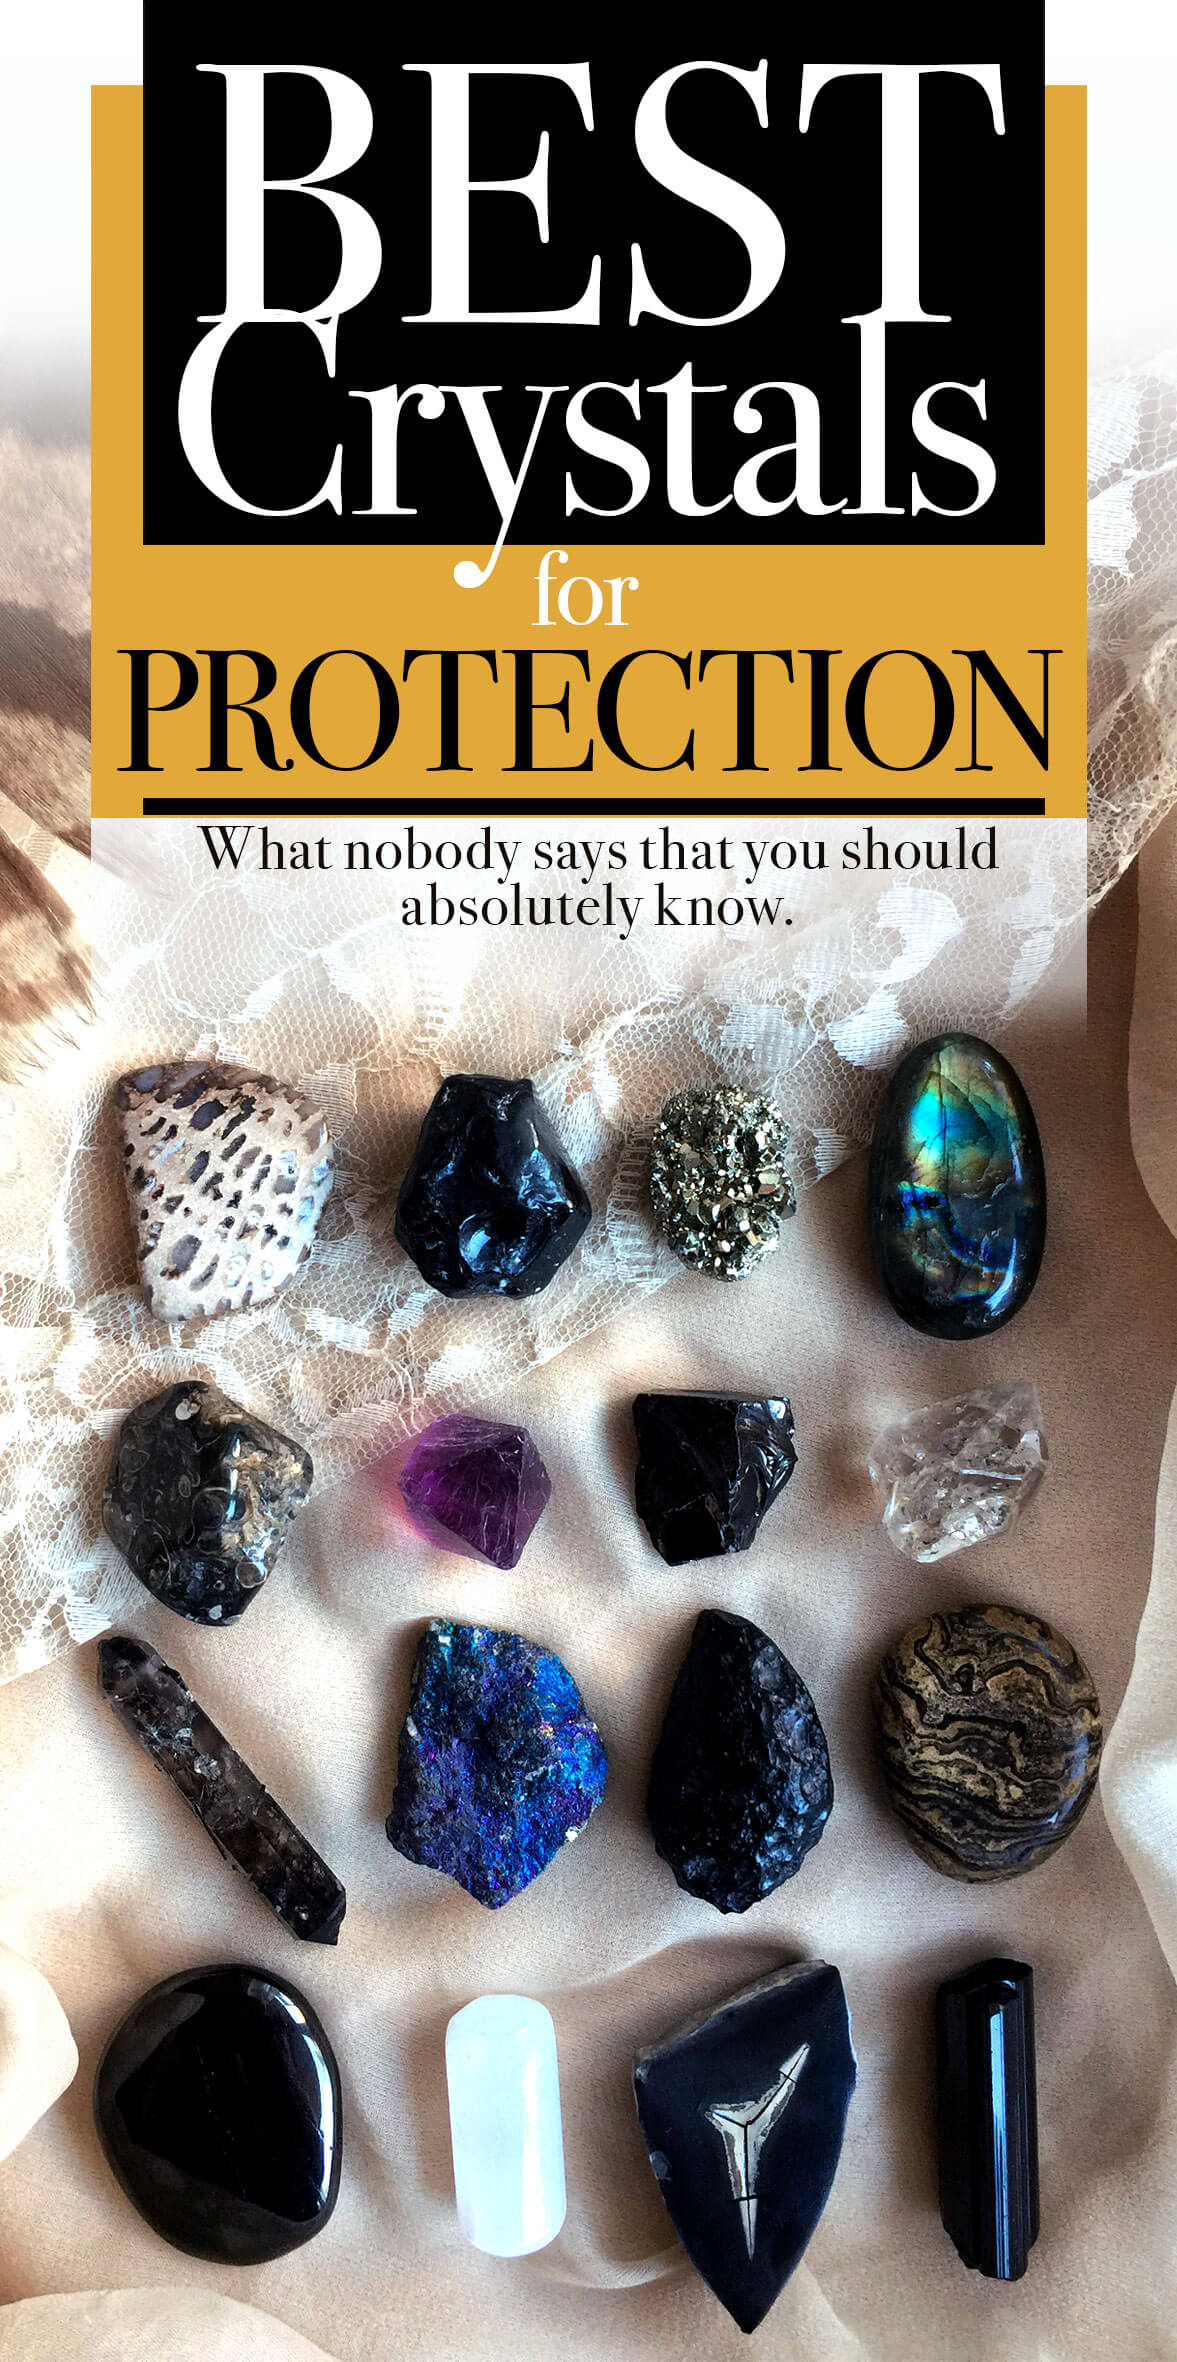 Best Crystals & Stones for Protection